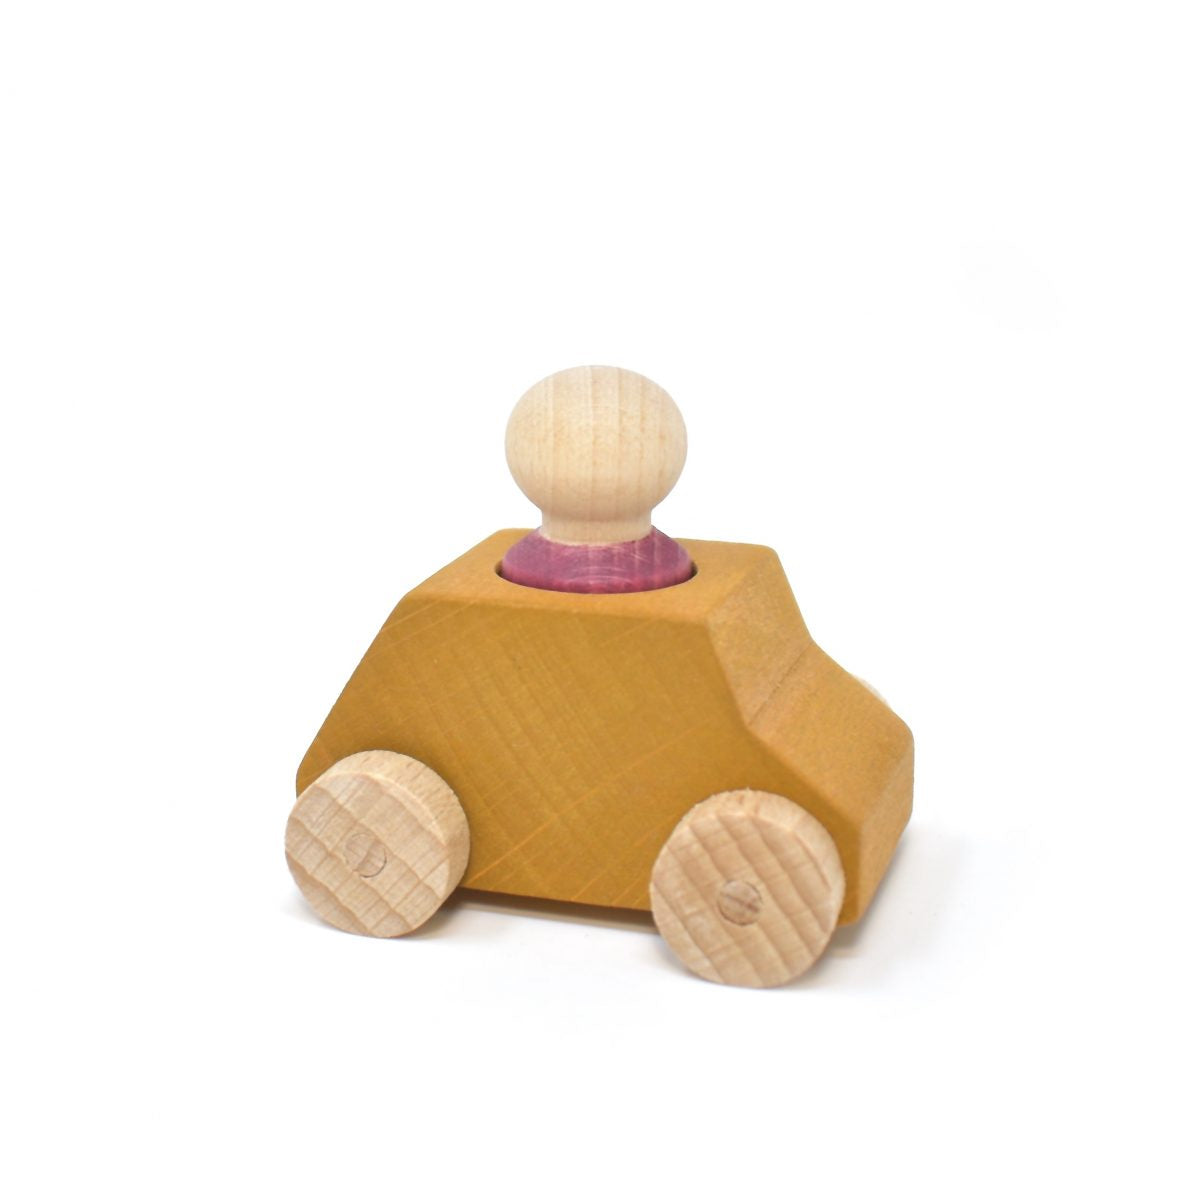 Car Ochre with Plum Figure